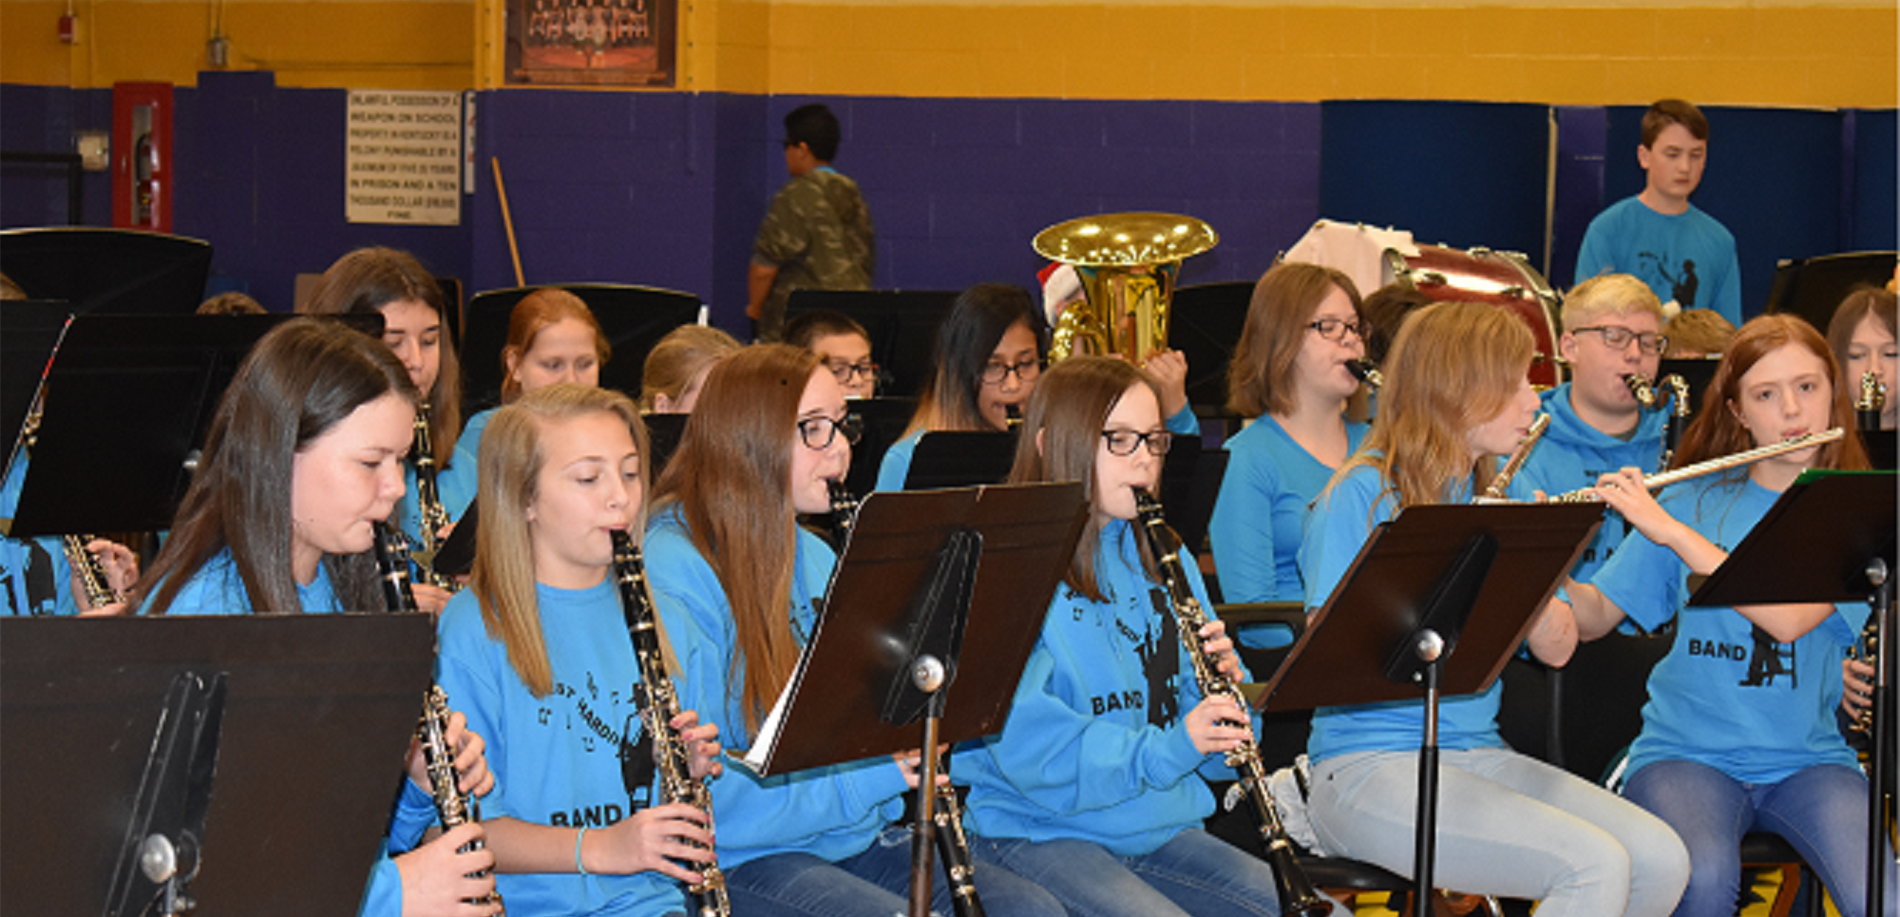 The WHMS Band Performs at the School Winter Program